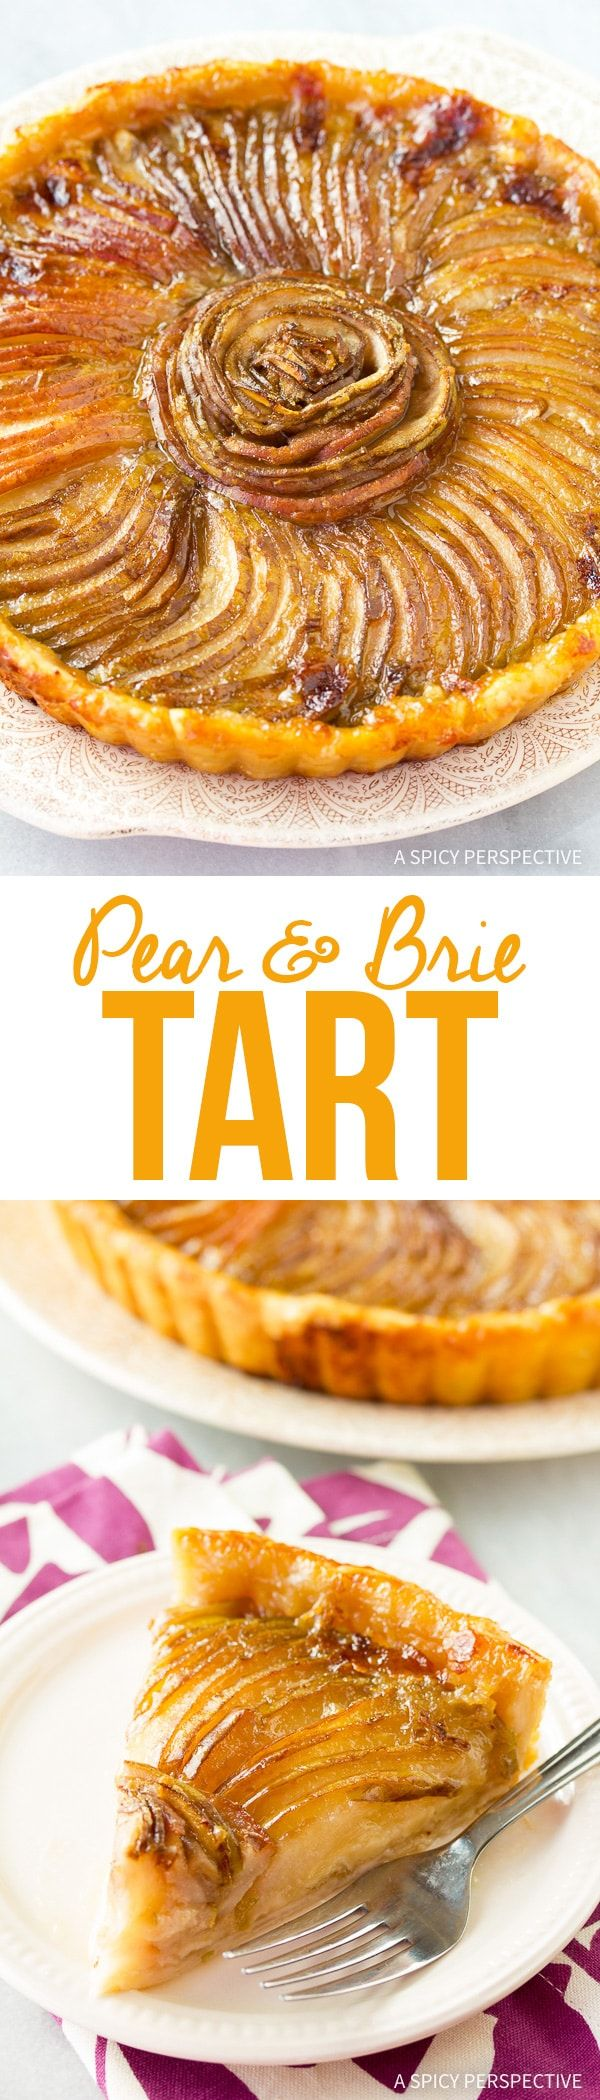 Simple Elegant Pear and Brie Tart Recipe - Make this glorious savory-sweet treat with just a handful of ingredients! Fresh pears and soft brie make all the difference. via @spicyperspectiv